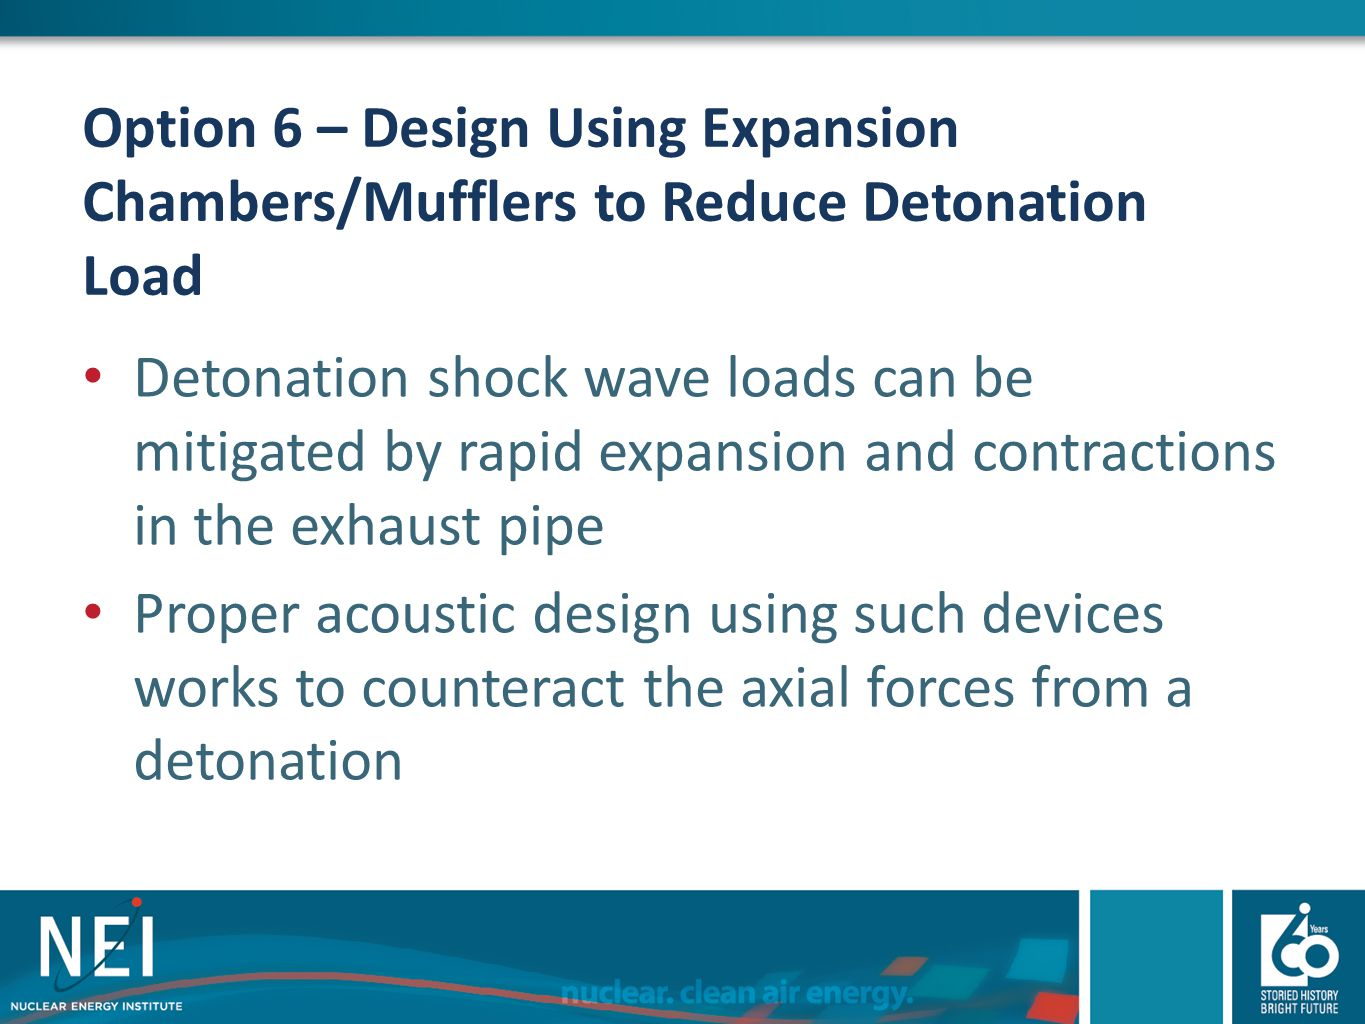 Option 6 – Design Using Expansion Chambers/Mufflers to Reduce Detonation Load